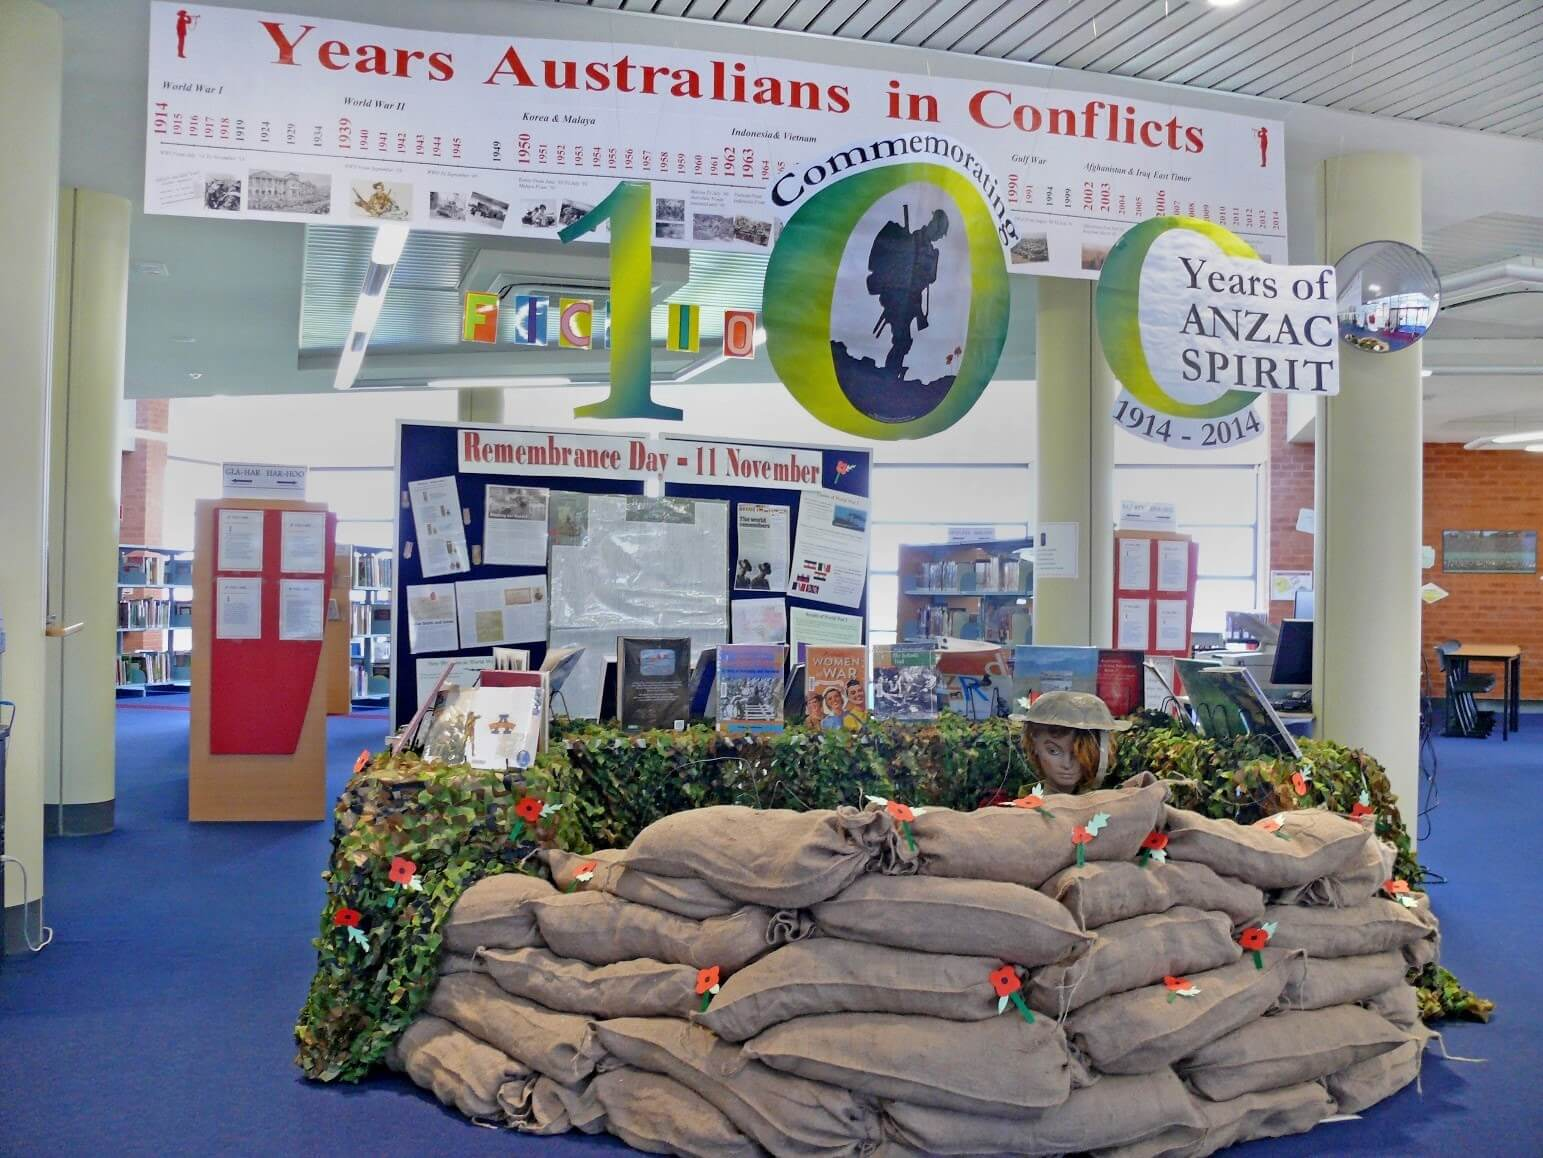 100 years of ANZAC spirit. Library display by Peter Moyes Anglican Community School, Western Australia.